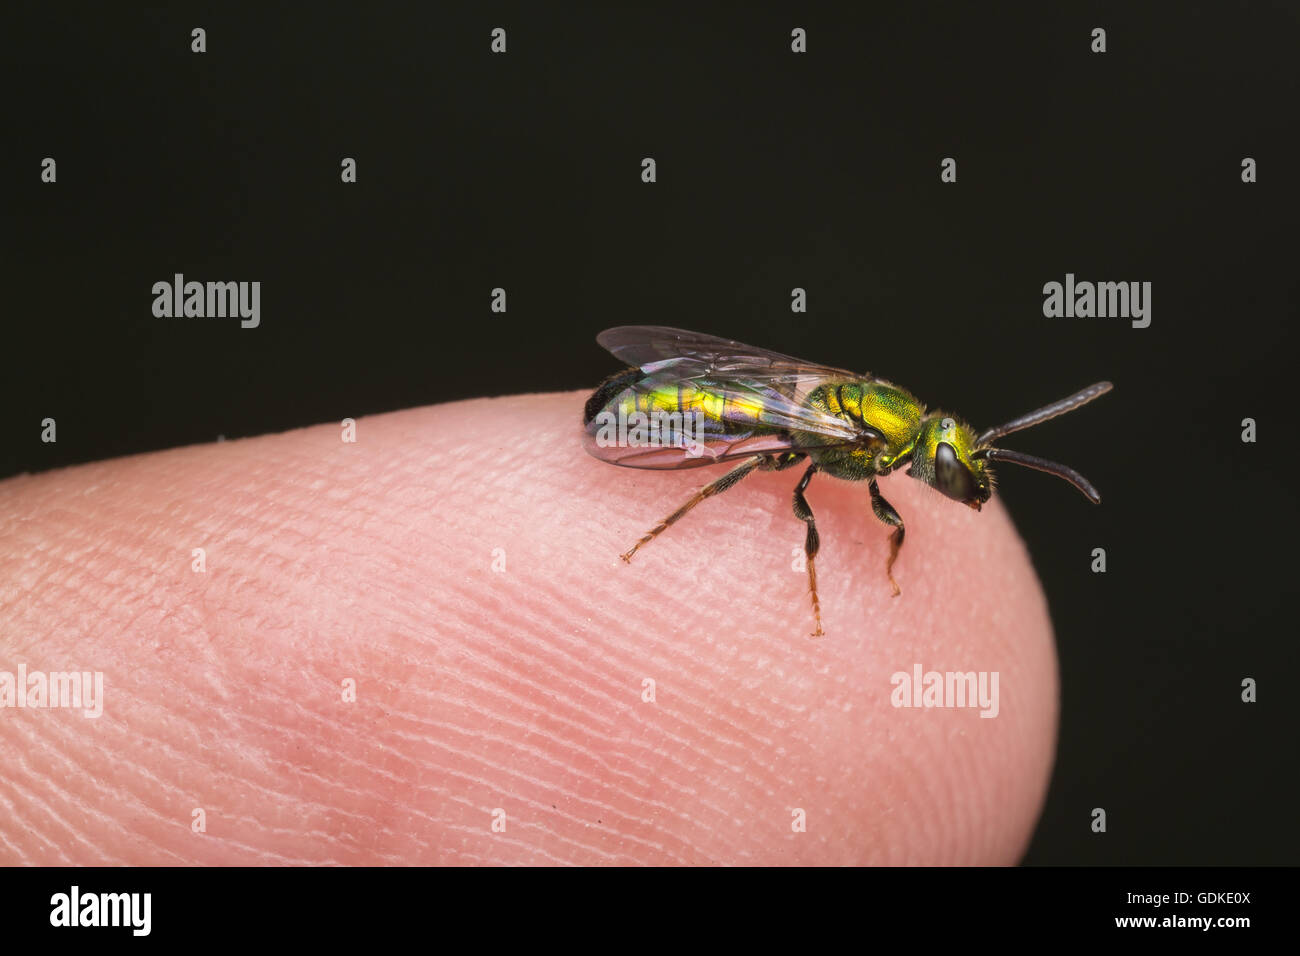 A bright metallic green Sweat Bee (Augochlora pura) stands on the tip of a finger. - Stock Image